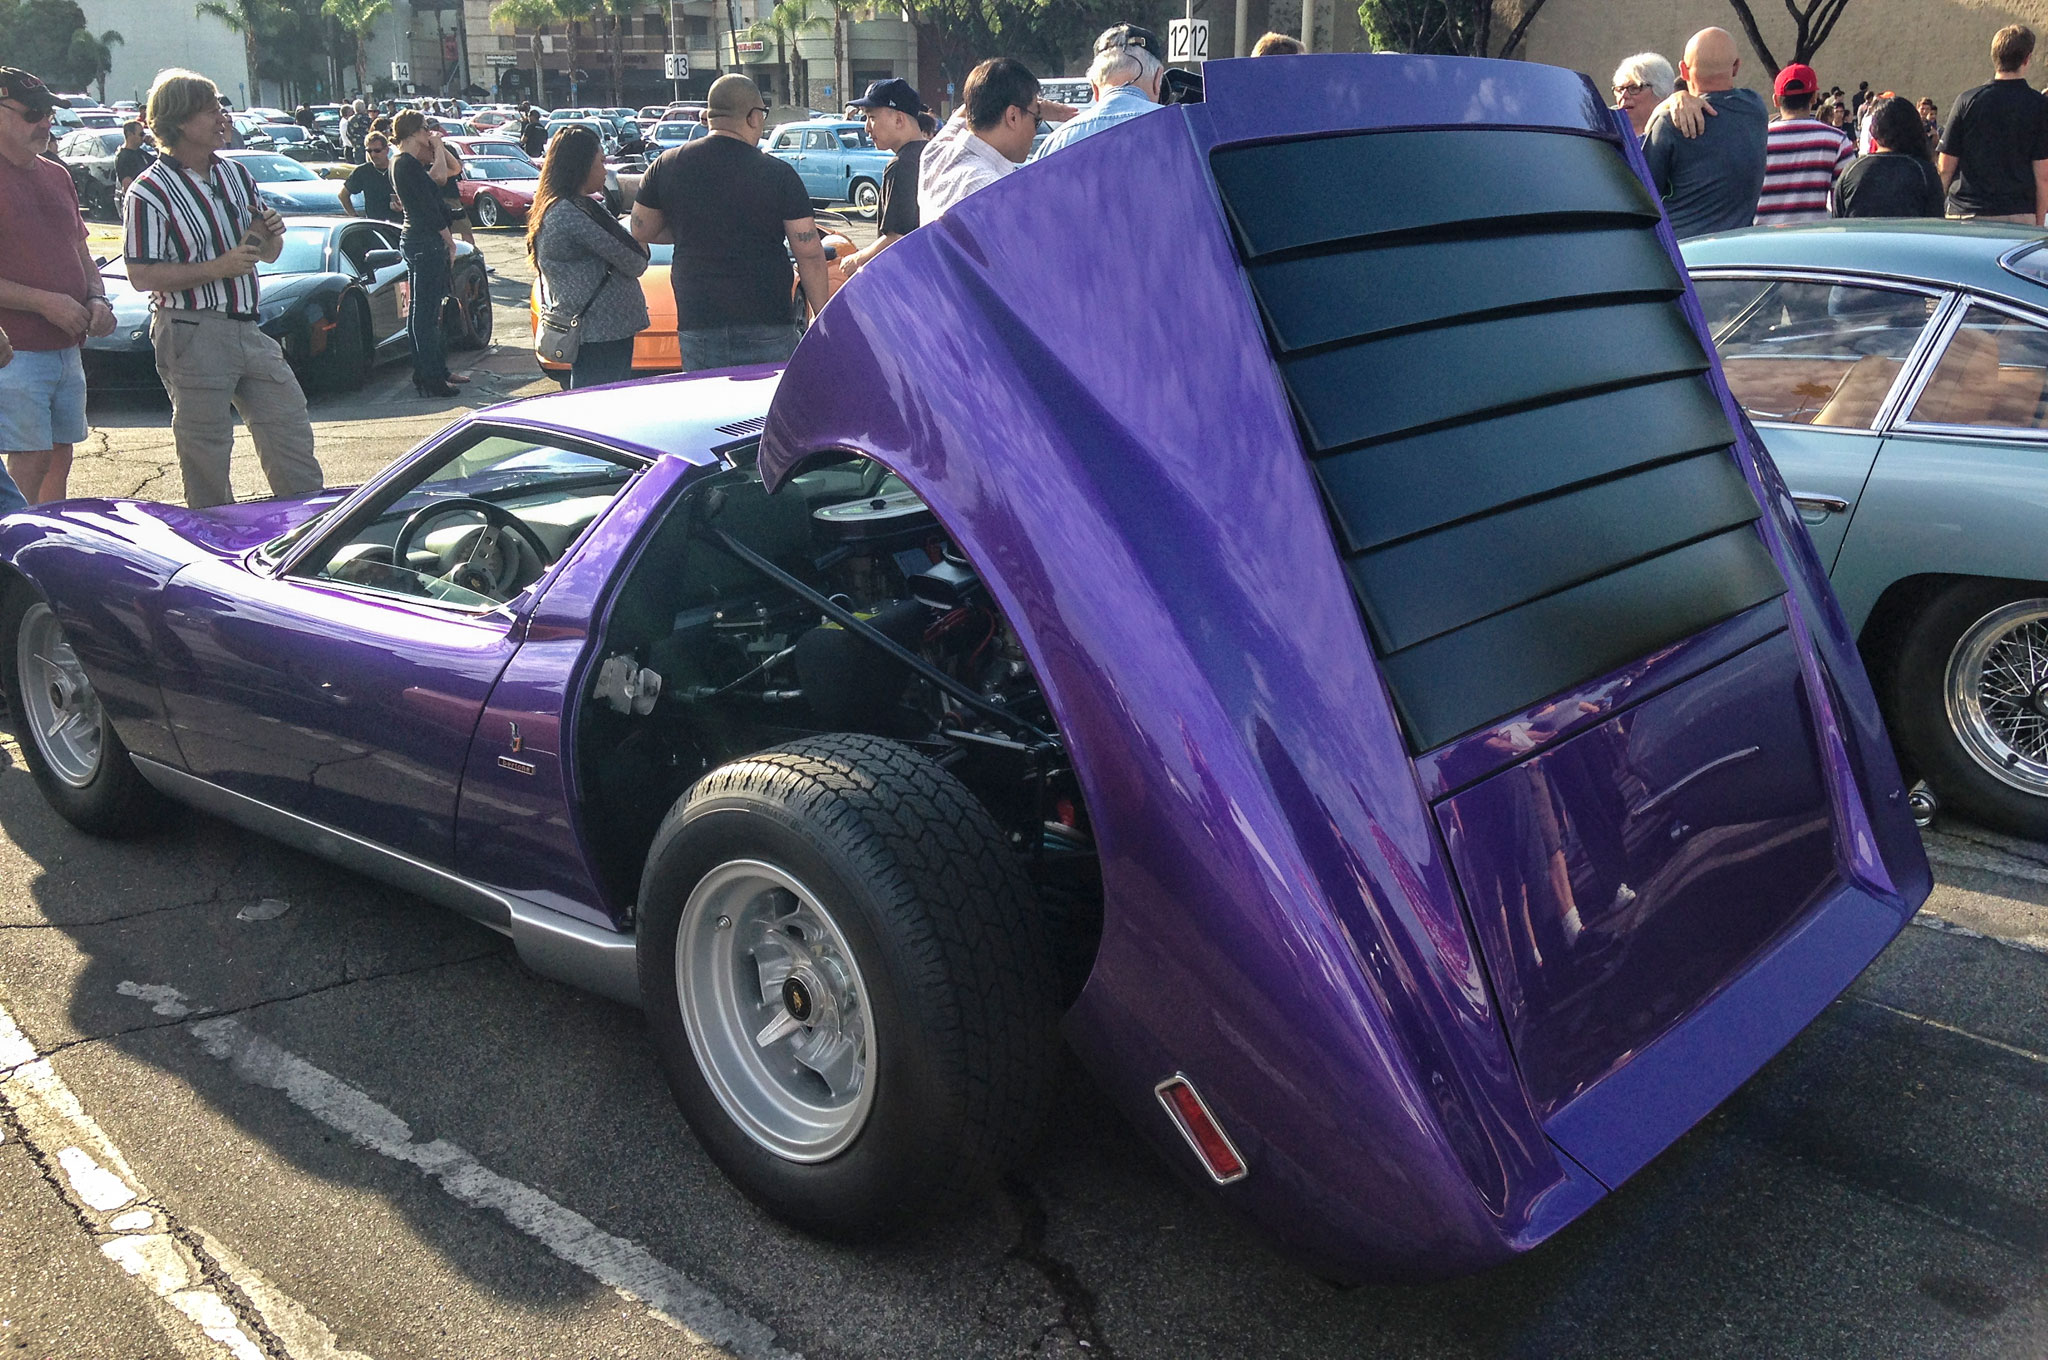 More shark than bull in appearance, the Miura retailed for about $20,000 new between 1966 and 1973. Though the Miura originally came in a rainbow of psychedelic hues, this purple looks to be a custom repaint.